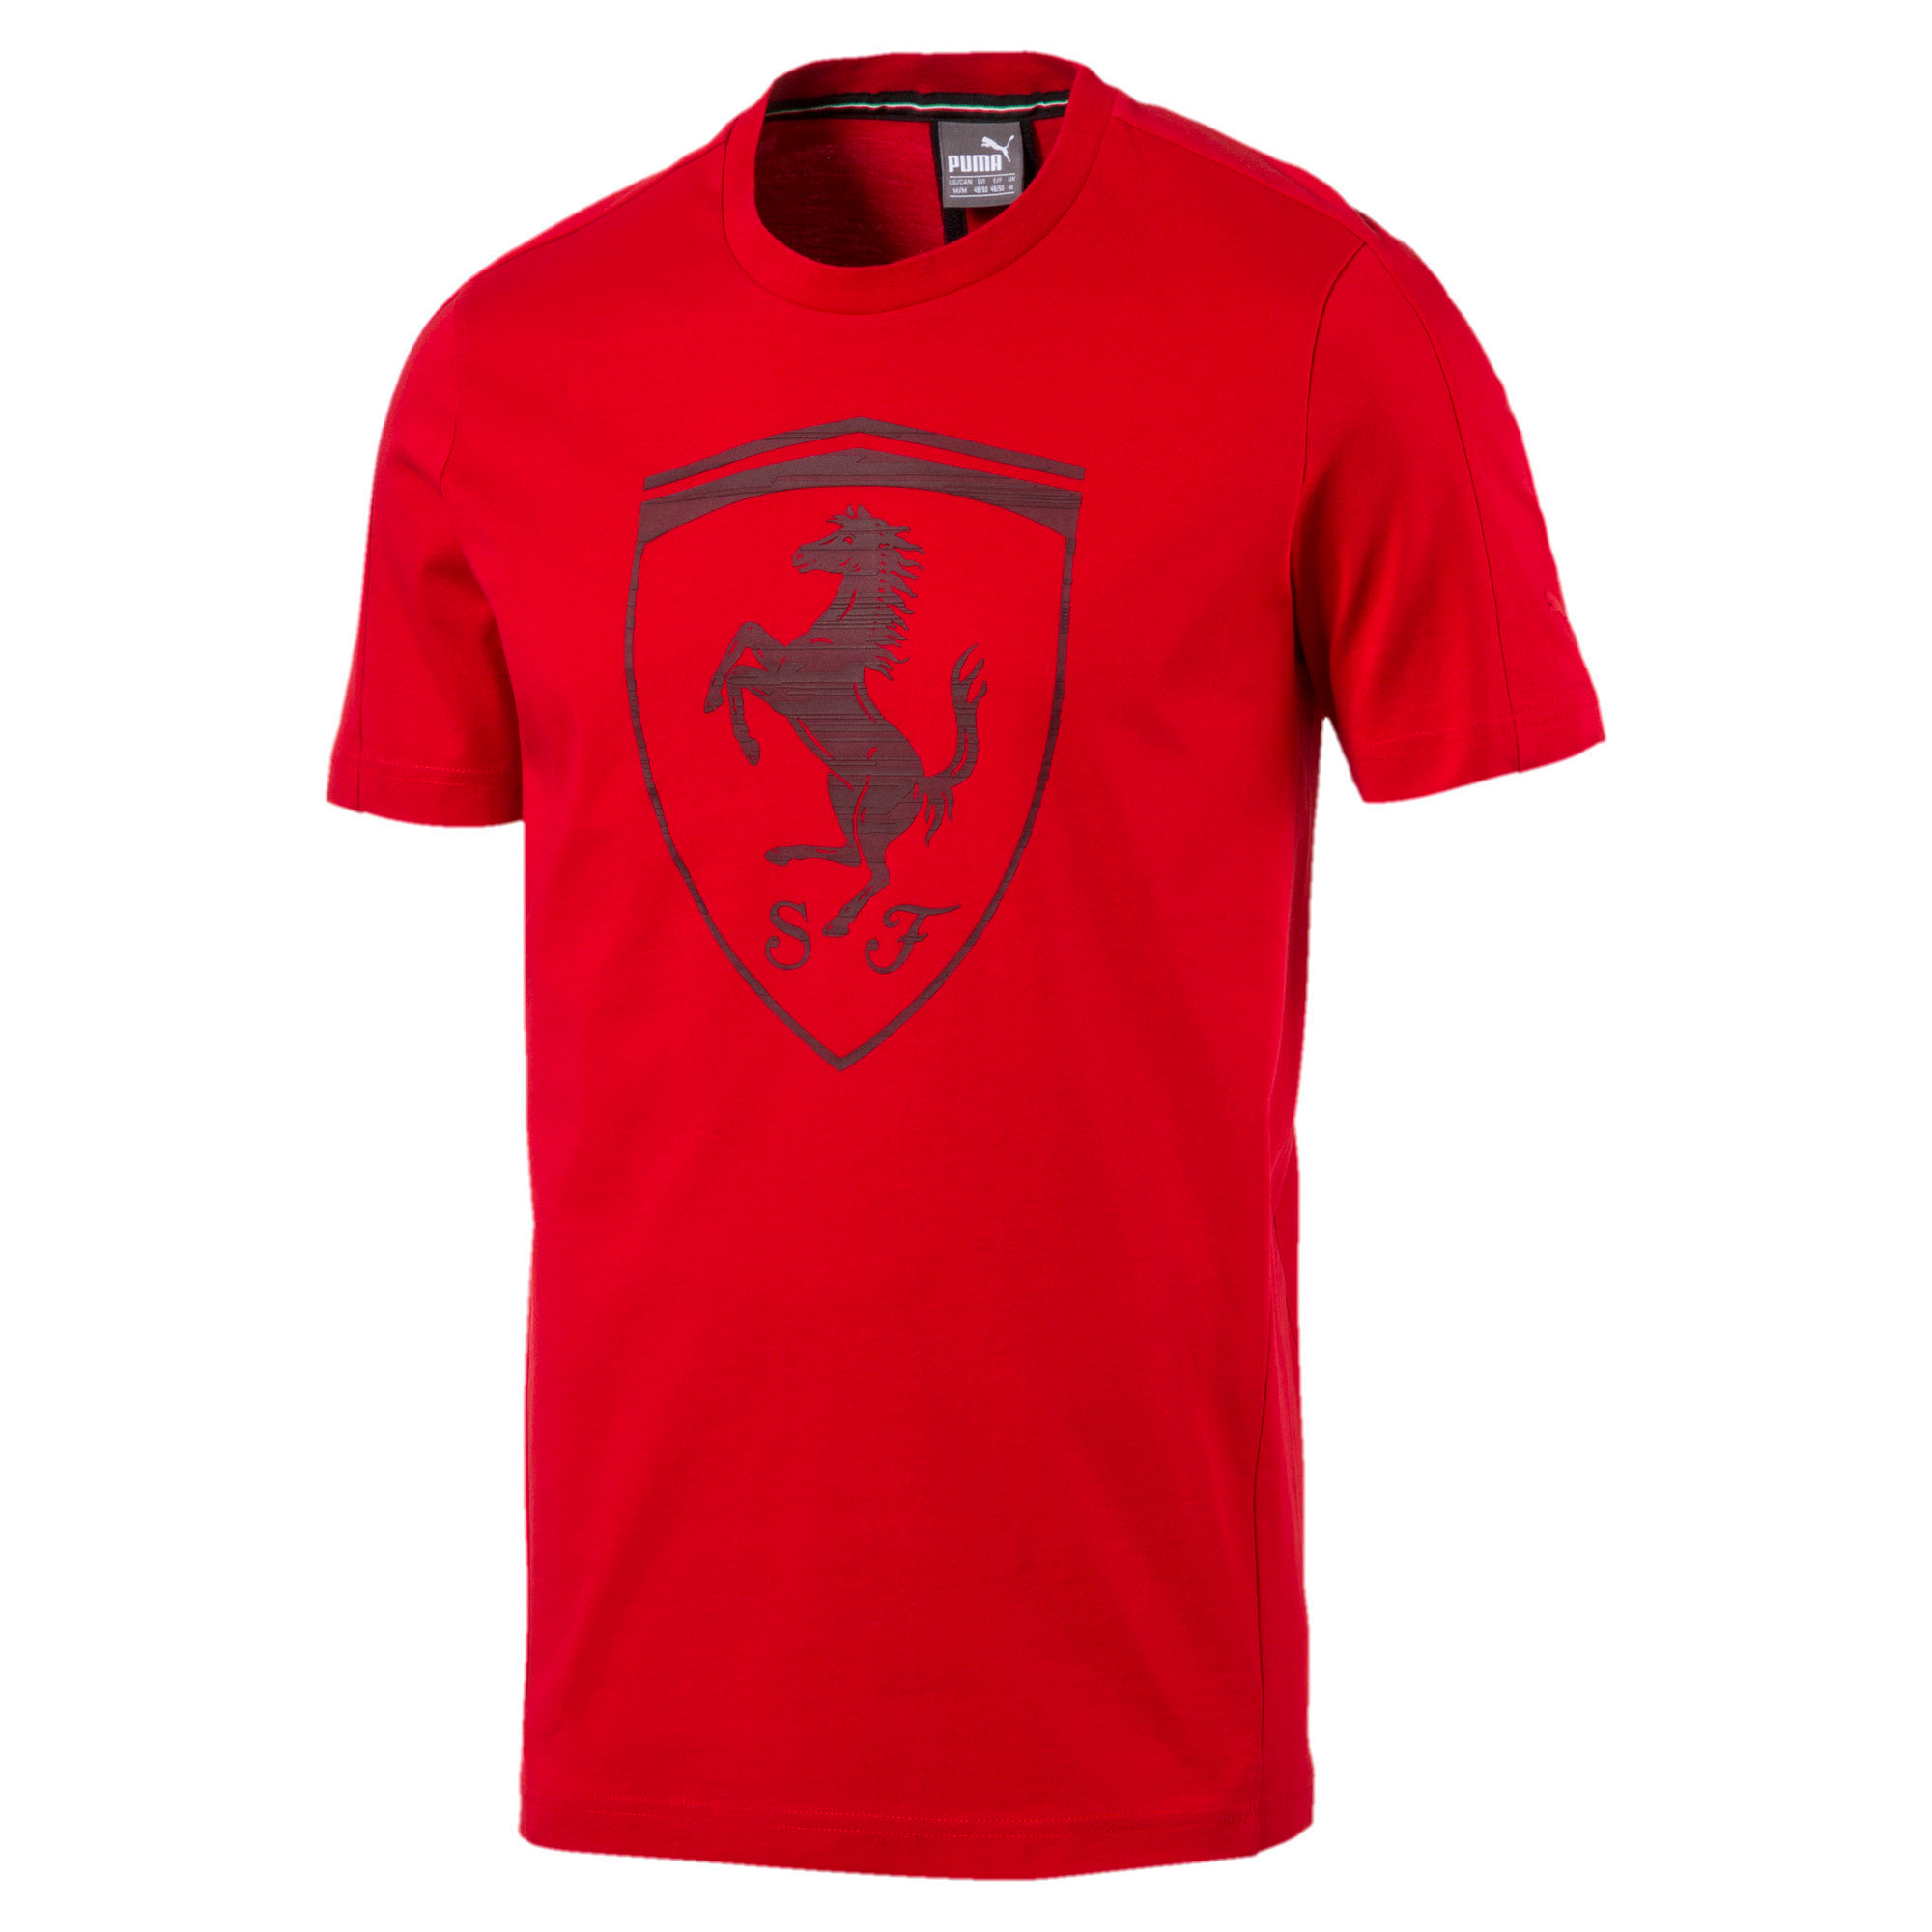 Thumbnail 4 of Ferrari Men's Big Shield T-Shirt, Rosso Corsa, medium-IND